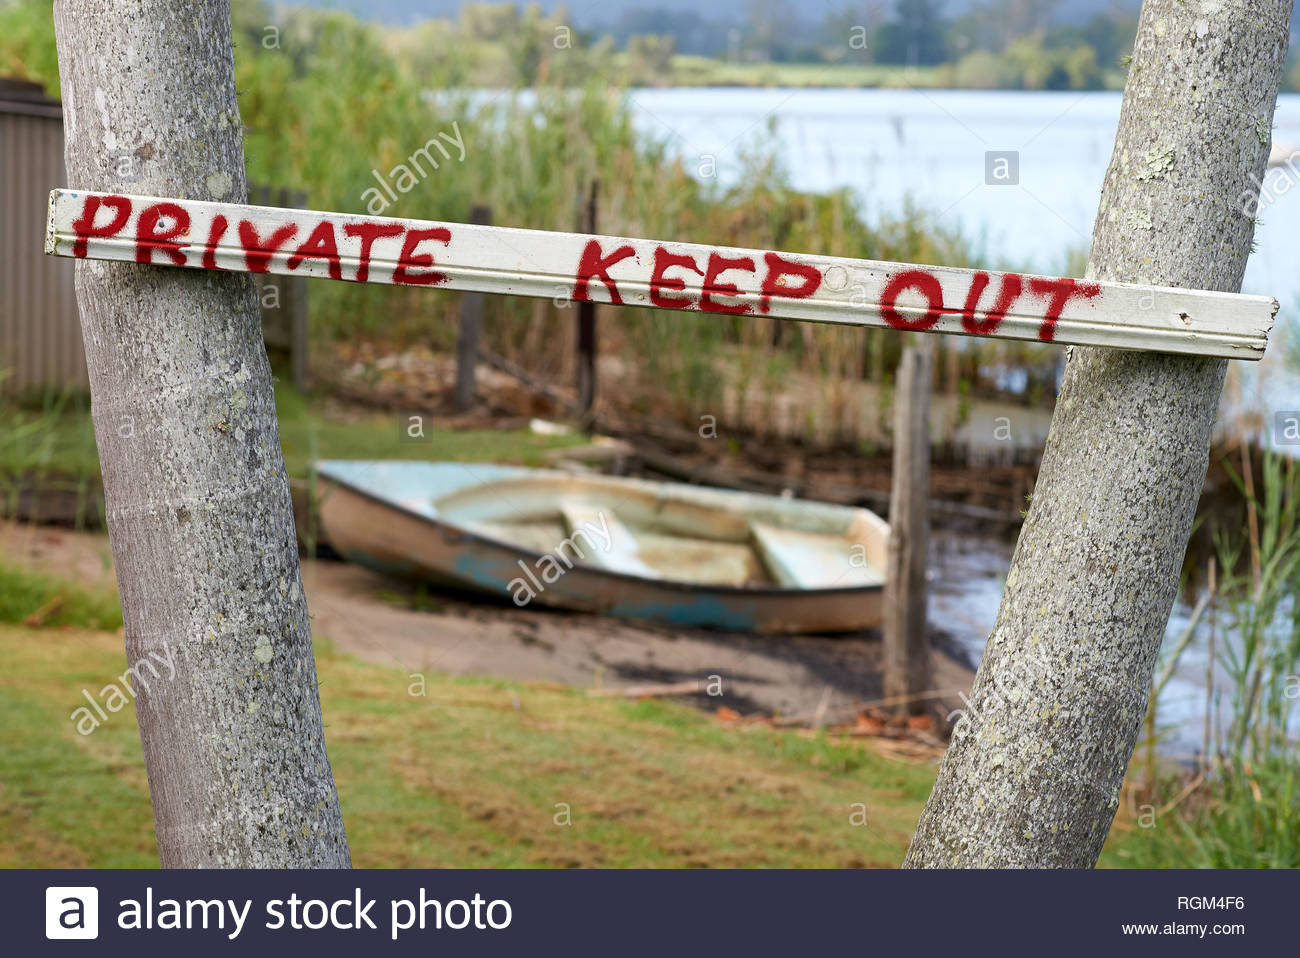 A homemade 'private keep out' sign - red painted letters on white - nailed between two palm trunks, with a beached wooden dinghy and a river behind. - Stock Image